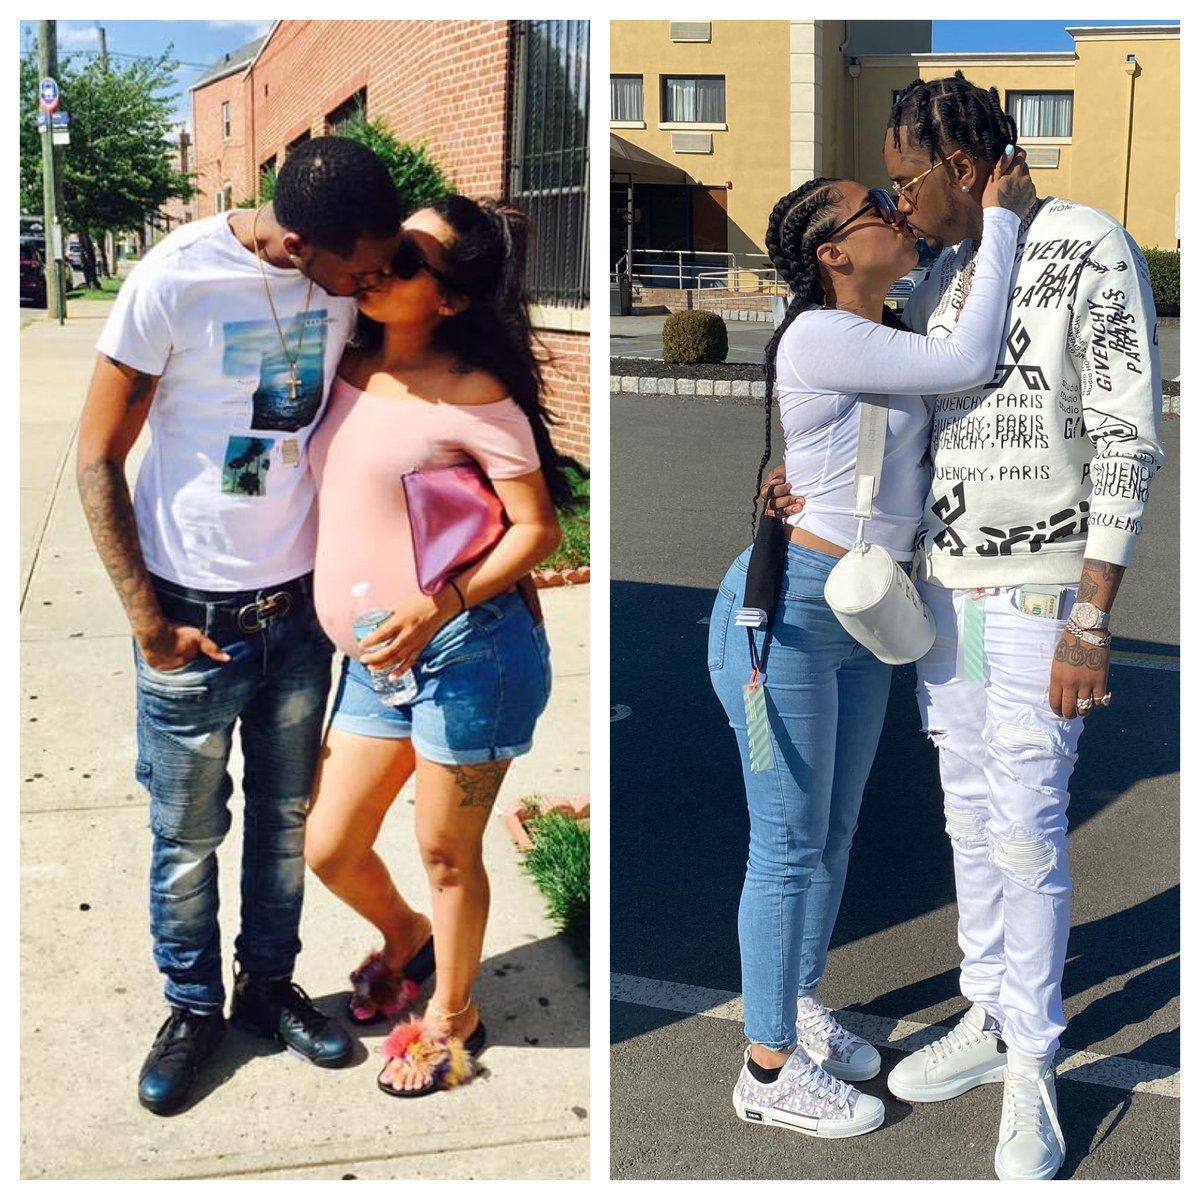 Ladies.. Stay down w yah man, Yu neva know ❗️ & we was livin inna shelter in dat first pic 🔥